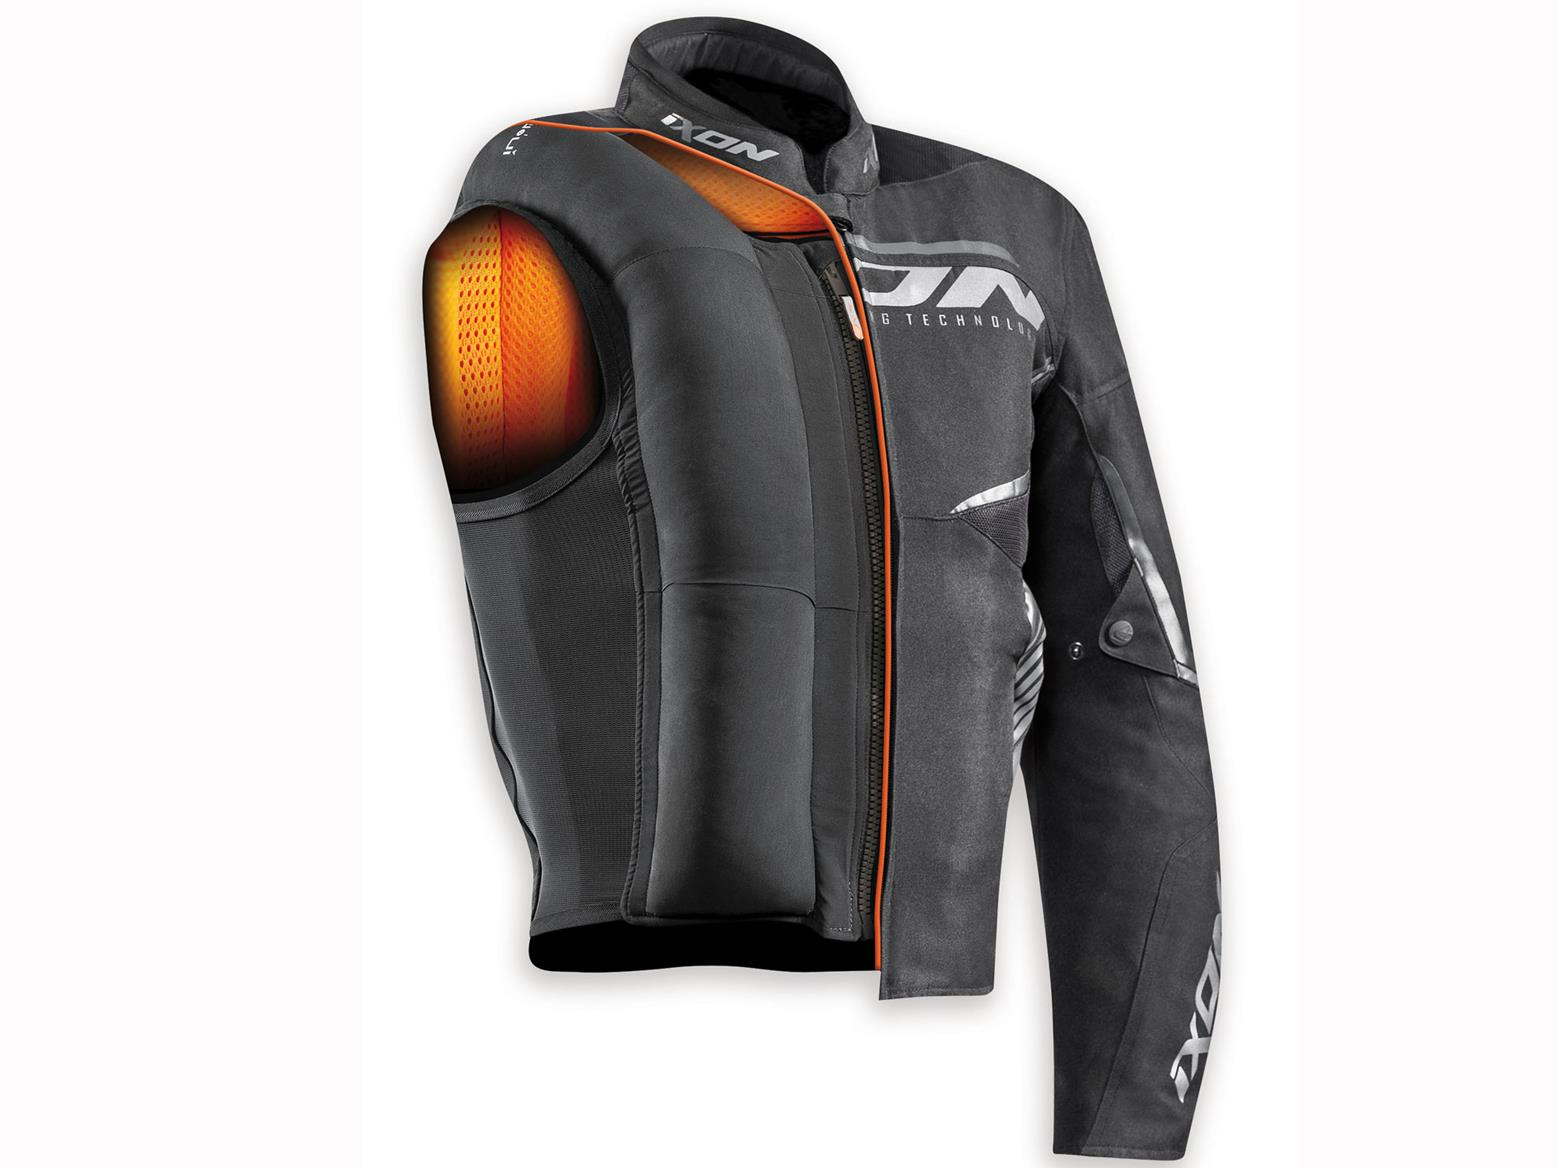 Ixon airbag suit with jacket